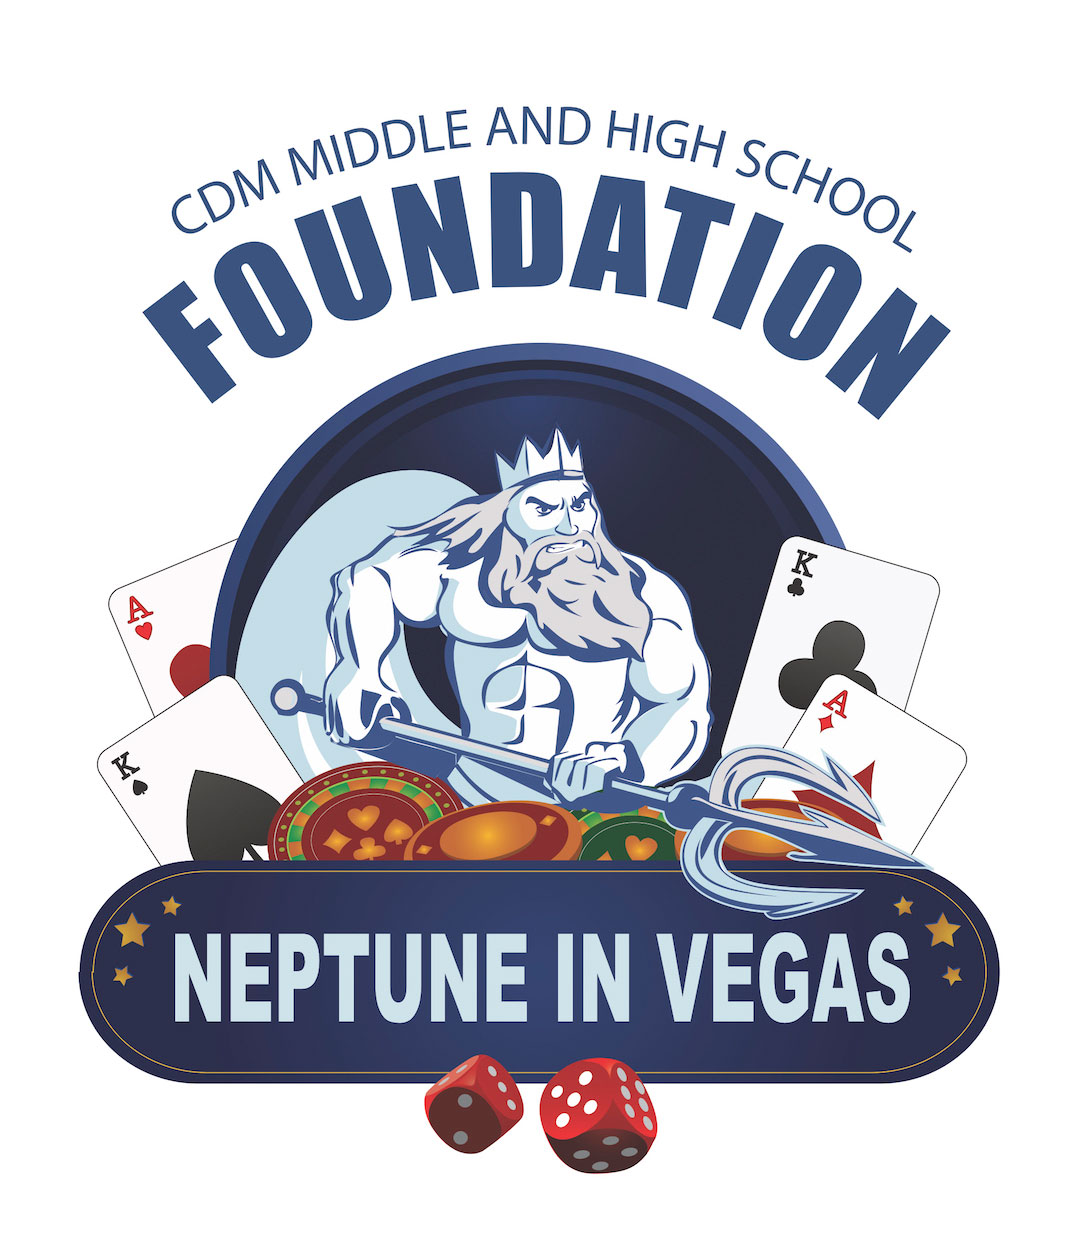 Foundation hosts Neptune logo